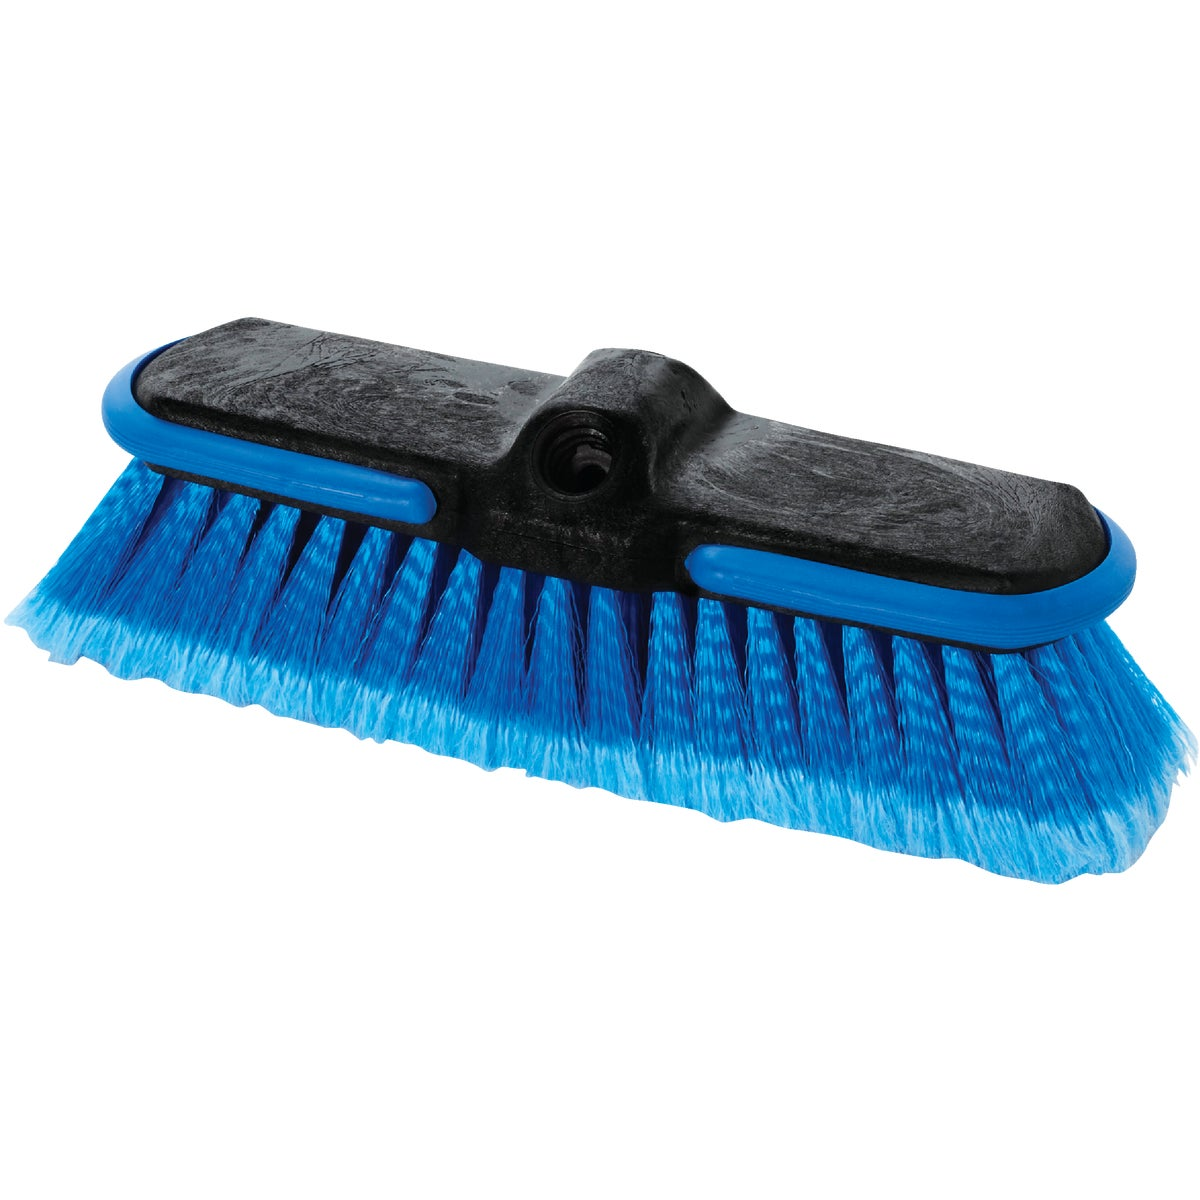 "10"" REPL BRUSH HEAD - 93057 by Carrand Companies"